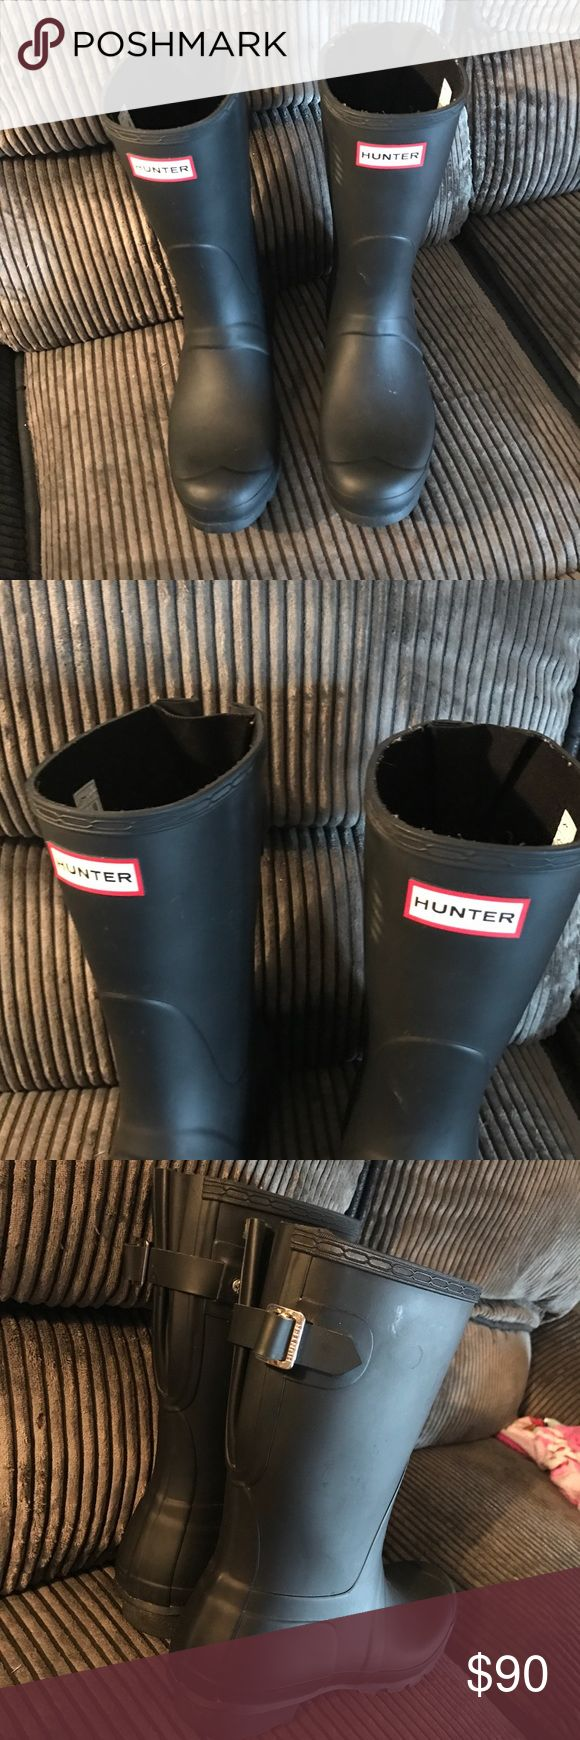 Original short Hunter boots Original matte women's hunter boots. Black. Size 9. Great condition. Small scuff as pictured. Only worn a few times. Hunter Boots Shoes Winter & Rain Boots